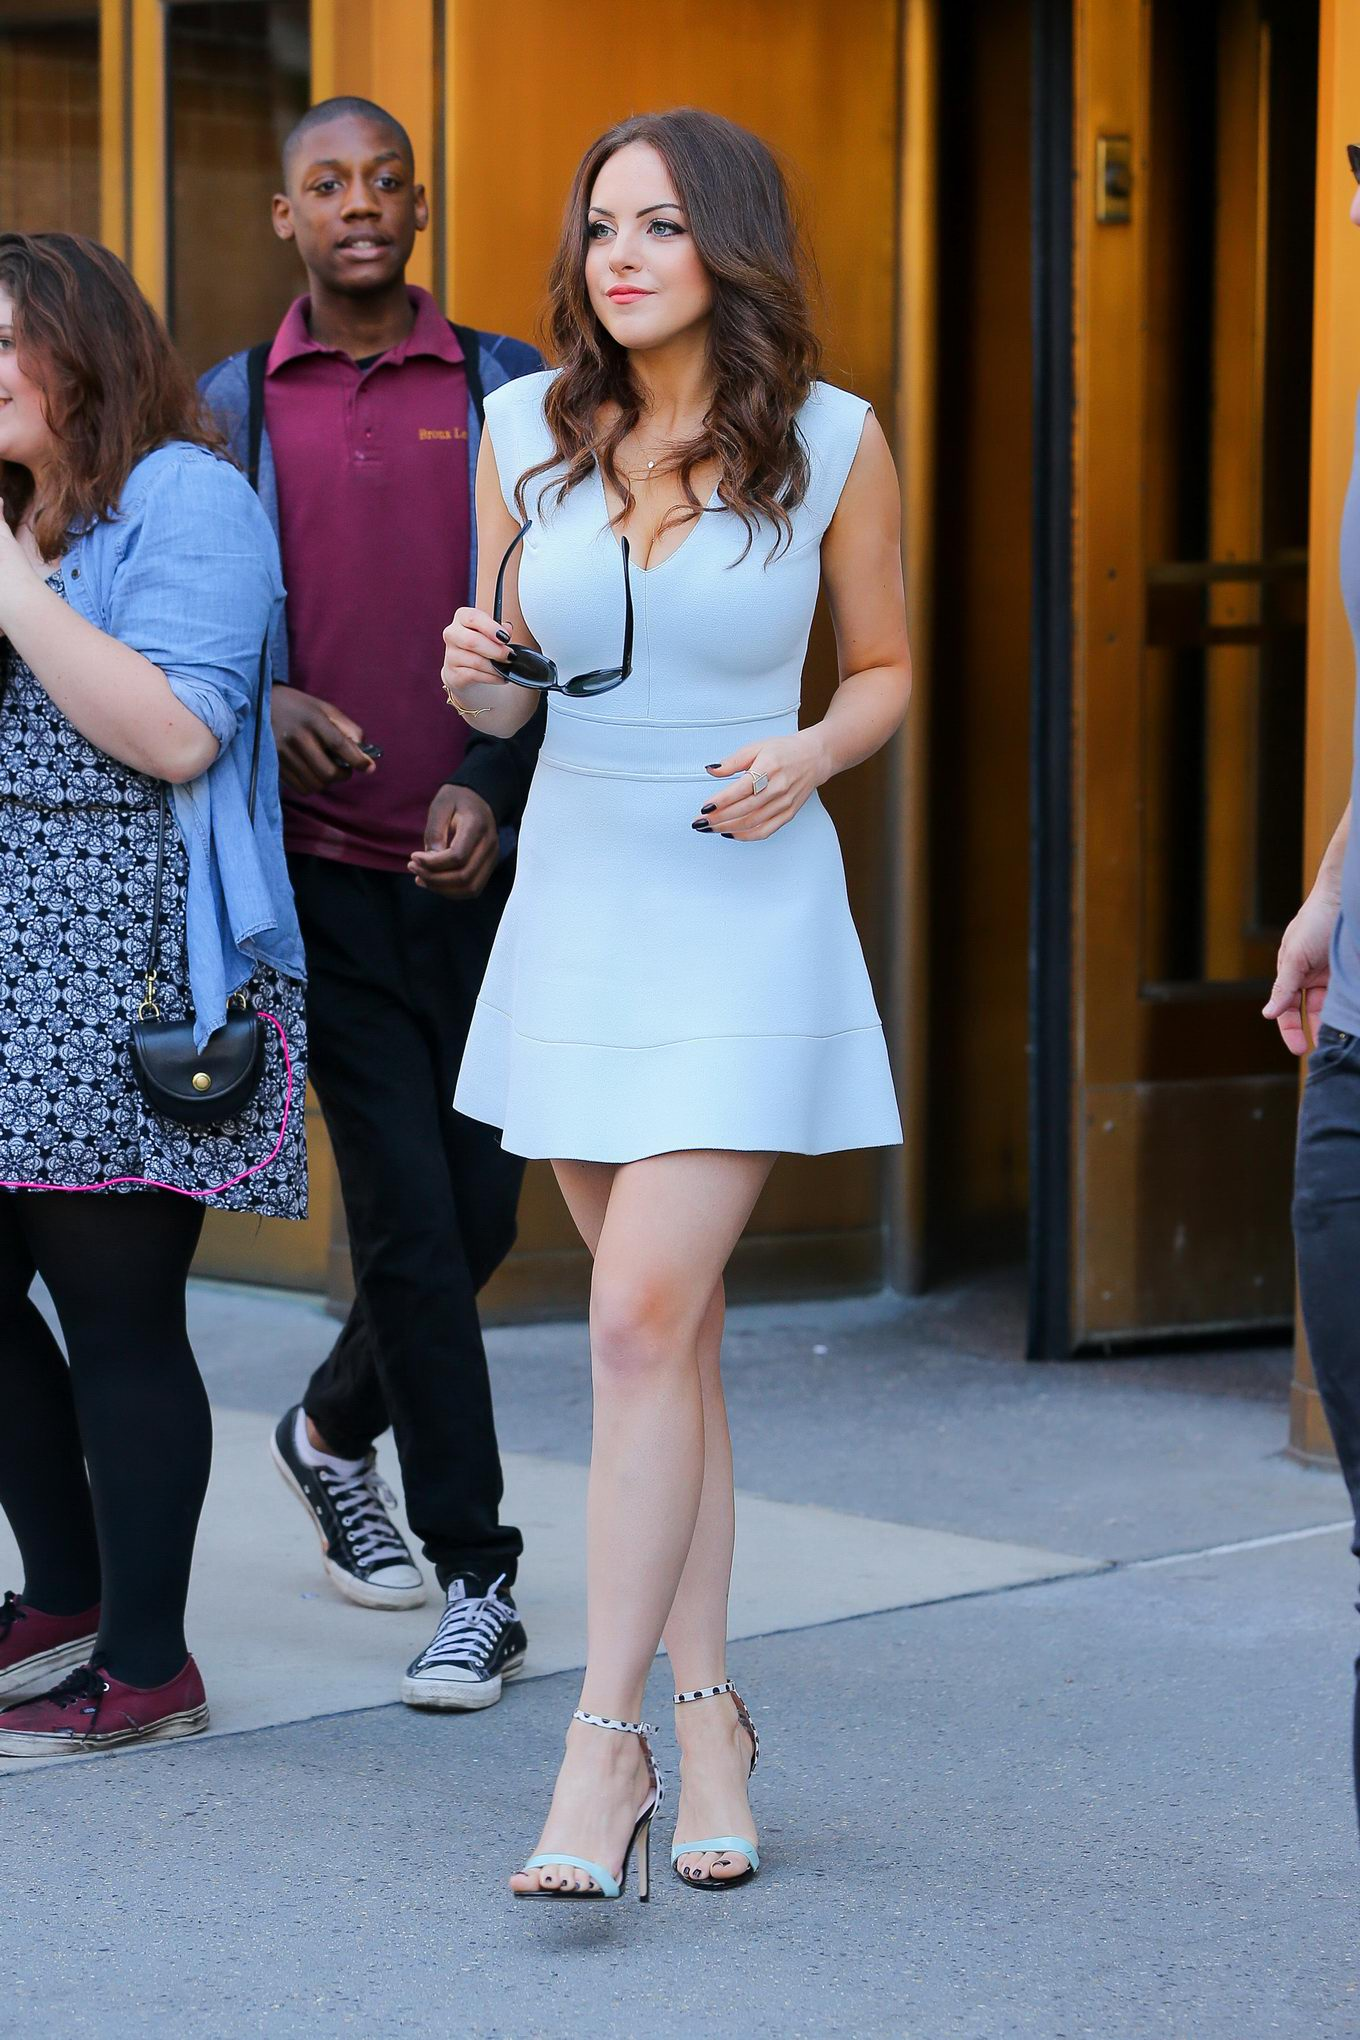 elizabeth gillies showing off her legs and huge cleavage while dealing